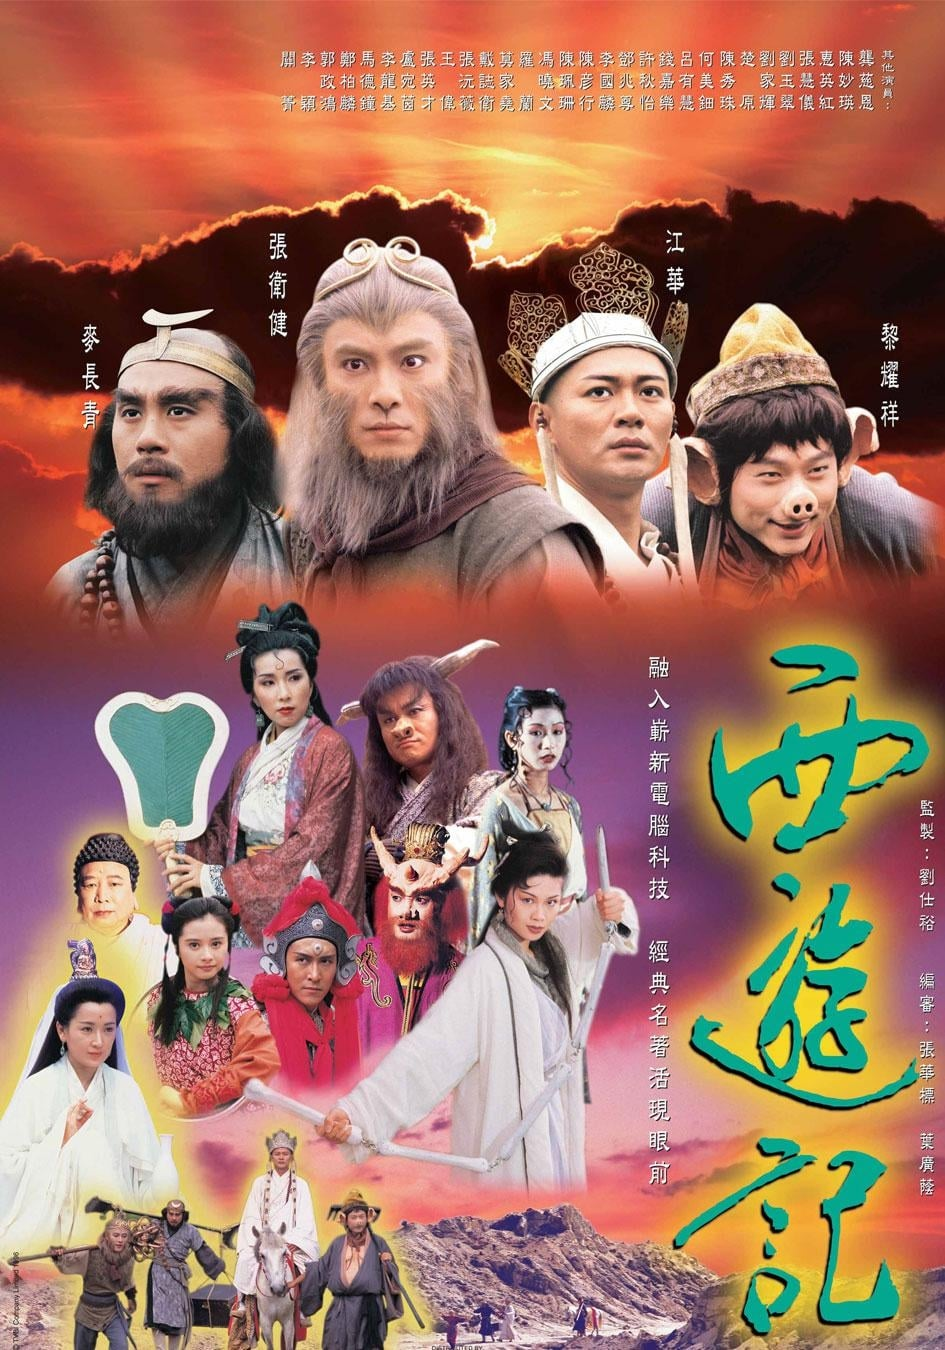 Journey to the West (1996)